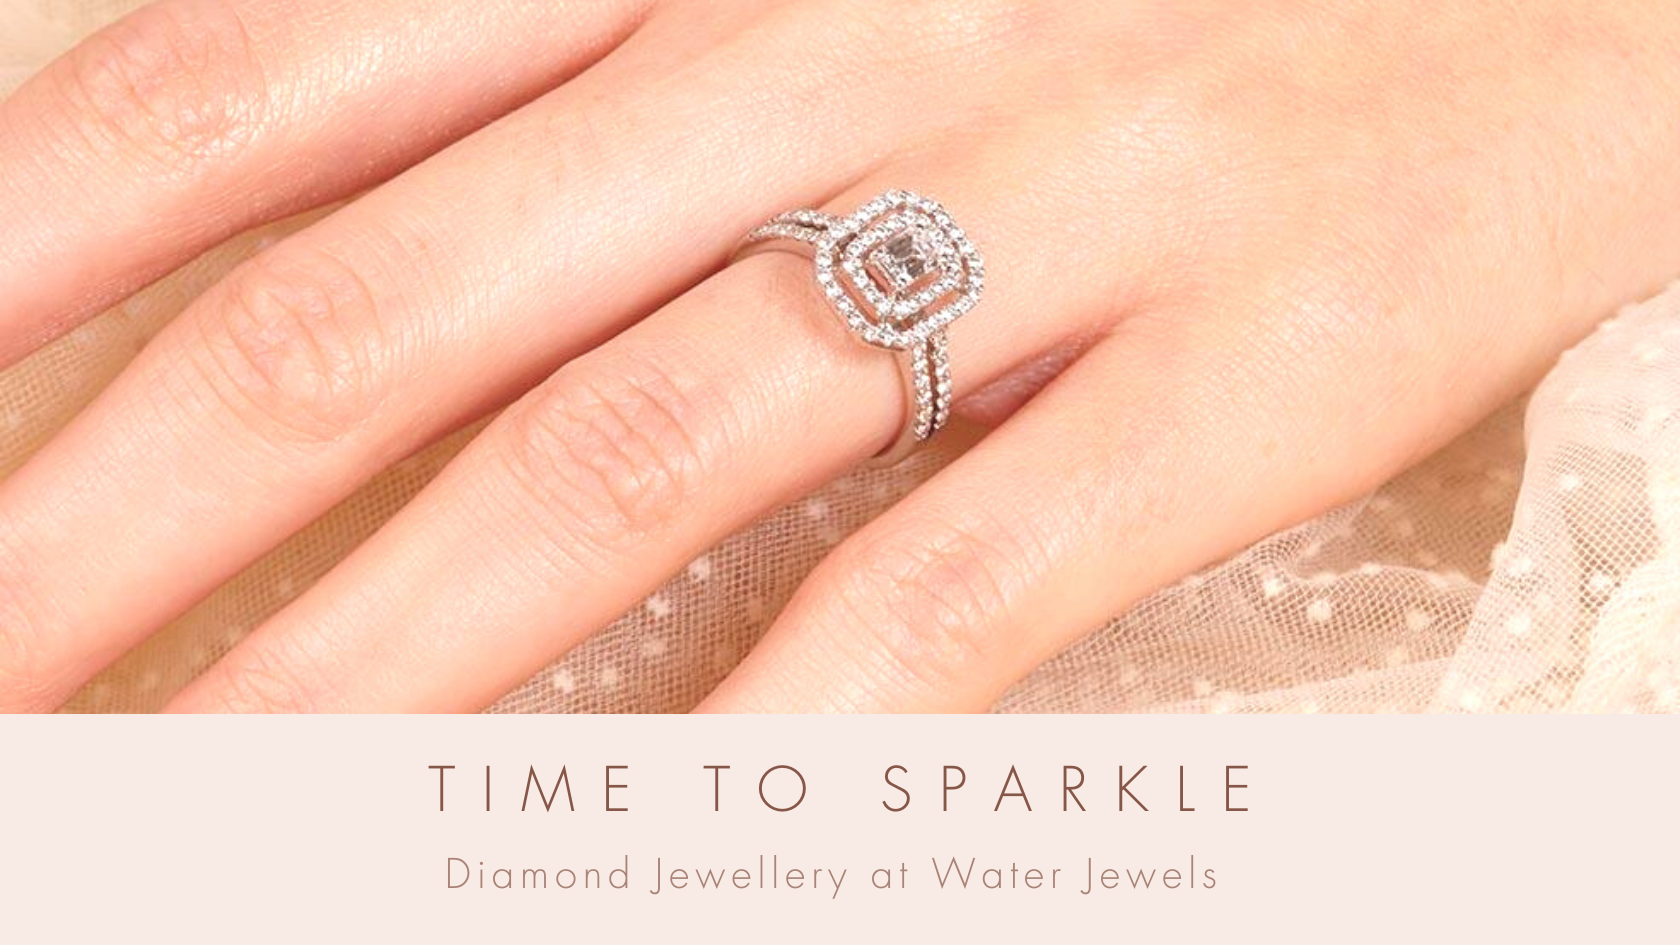 Time to Sparkle - Diamond Jewellery at Water Jewels